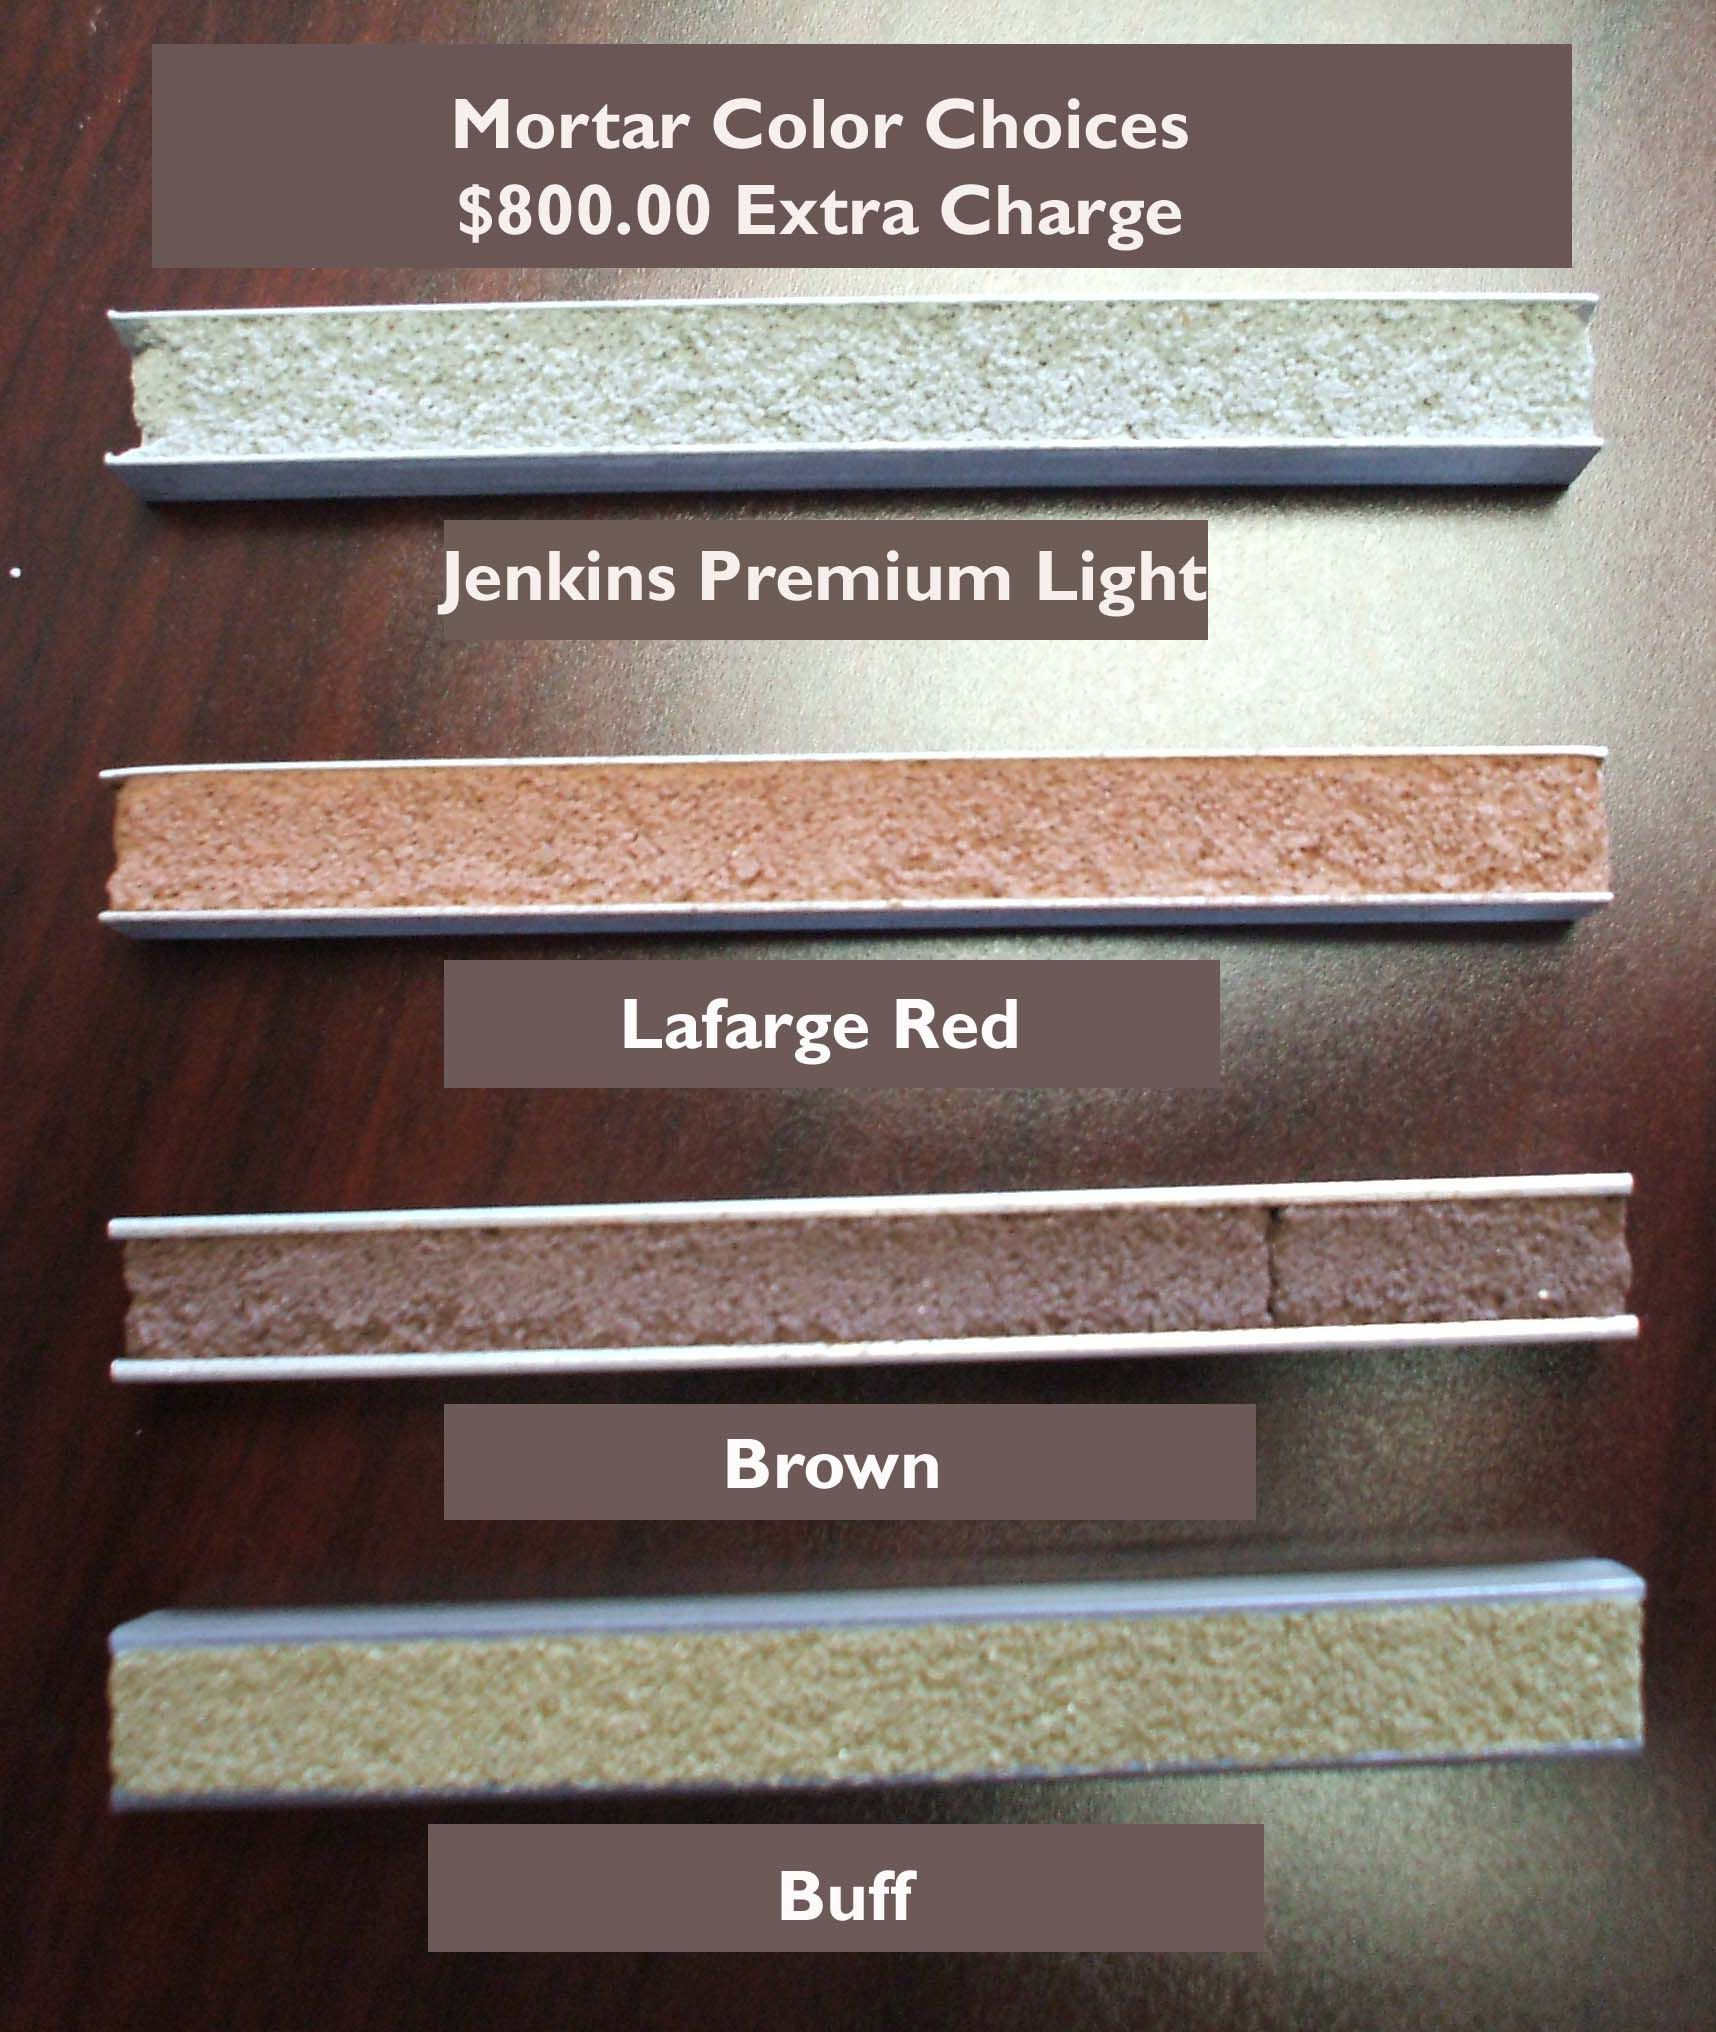 Brick mortar color choices heritage homes fl brick choices brick mortar color choices heritage homes fl geenschuldenfo Choice Image